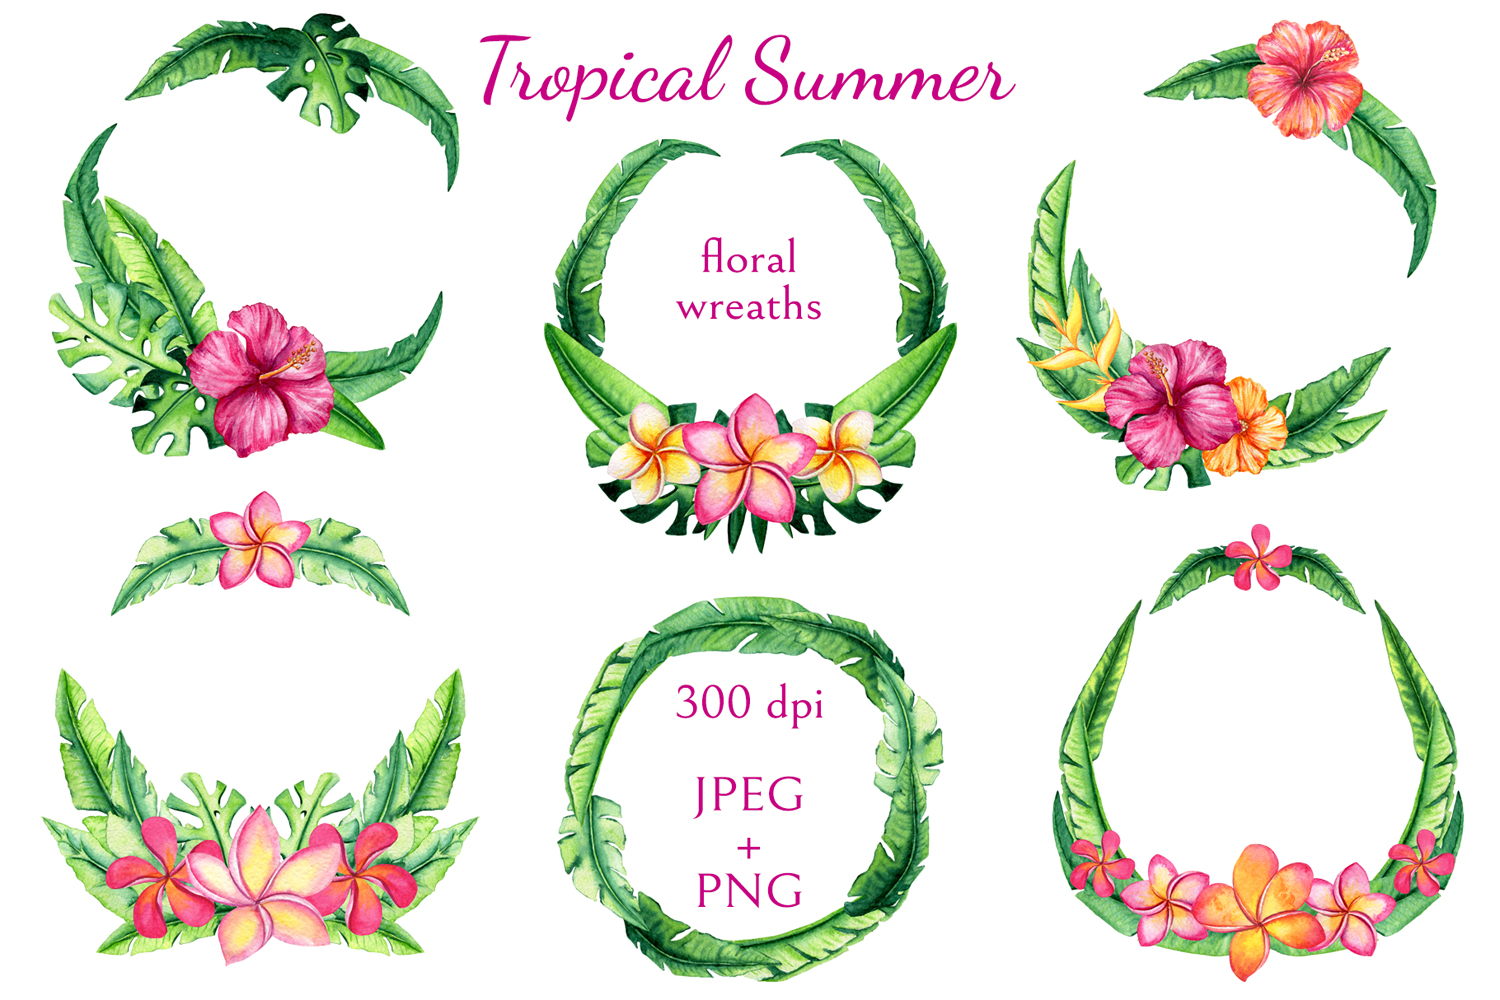 Tropical Summer example image 8